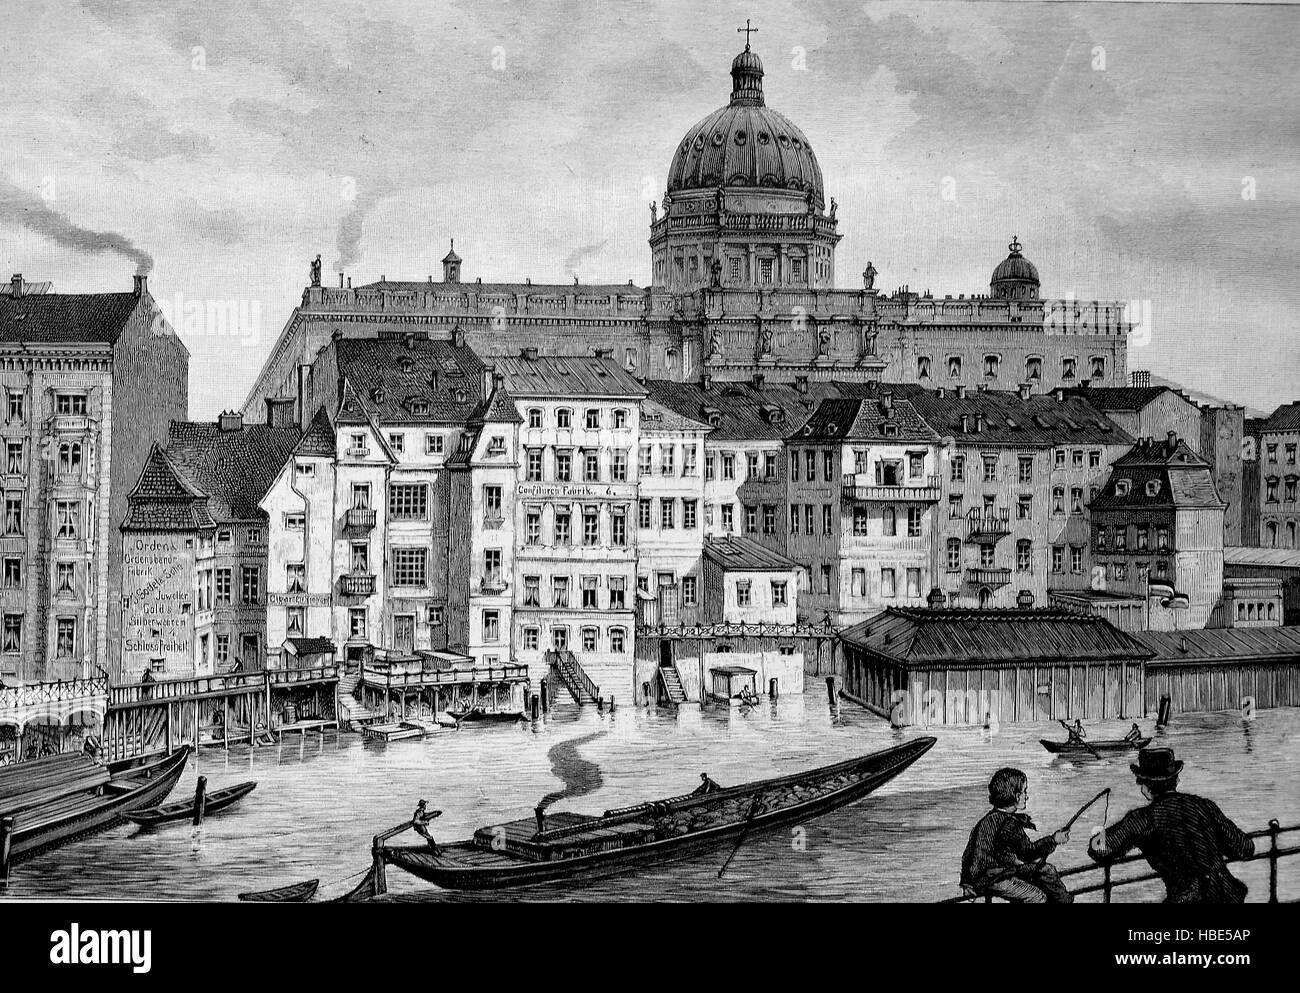 The Schlossfreiheit of Berlin, Germany, Schlossfreiheit is the old name of the square between the Berlin Stadtschloss - Stock Image